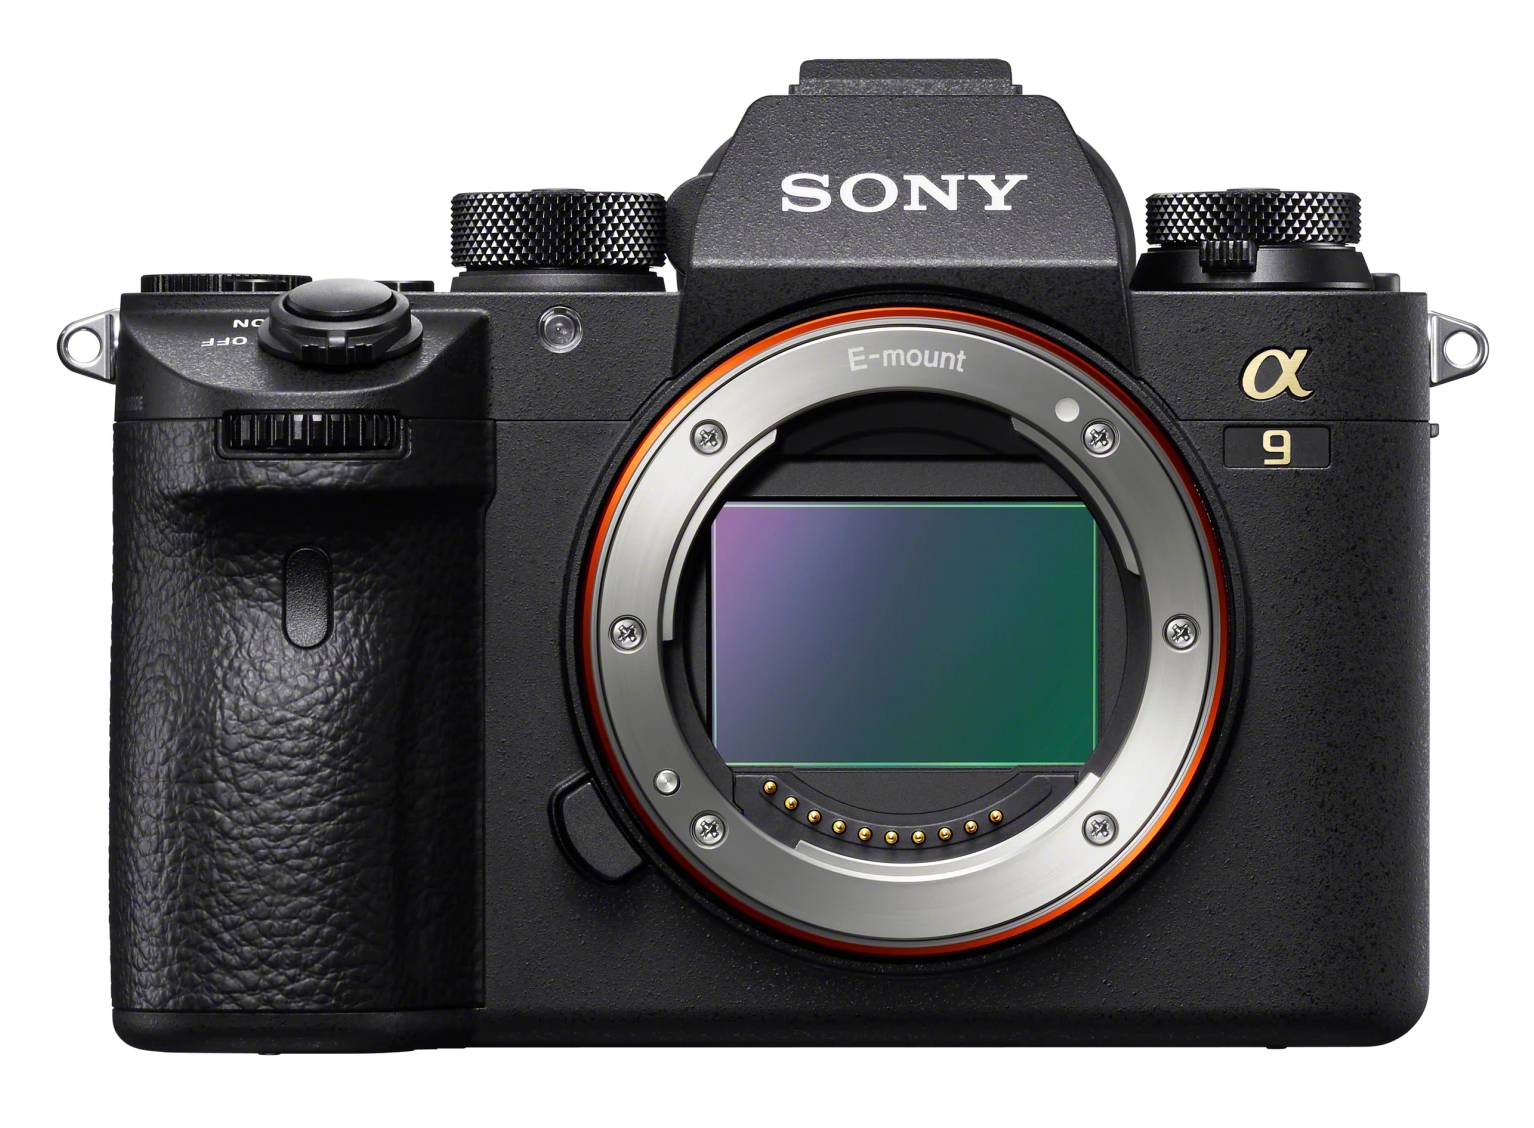 The Sony Alpha A9 is the ultimate mirrorless full-frame camera